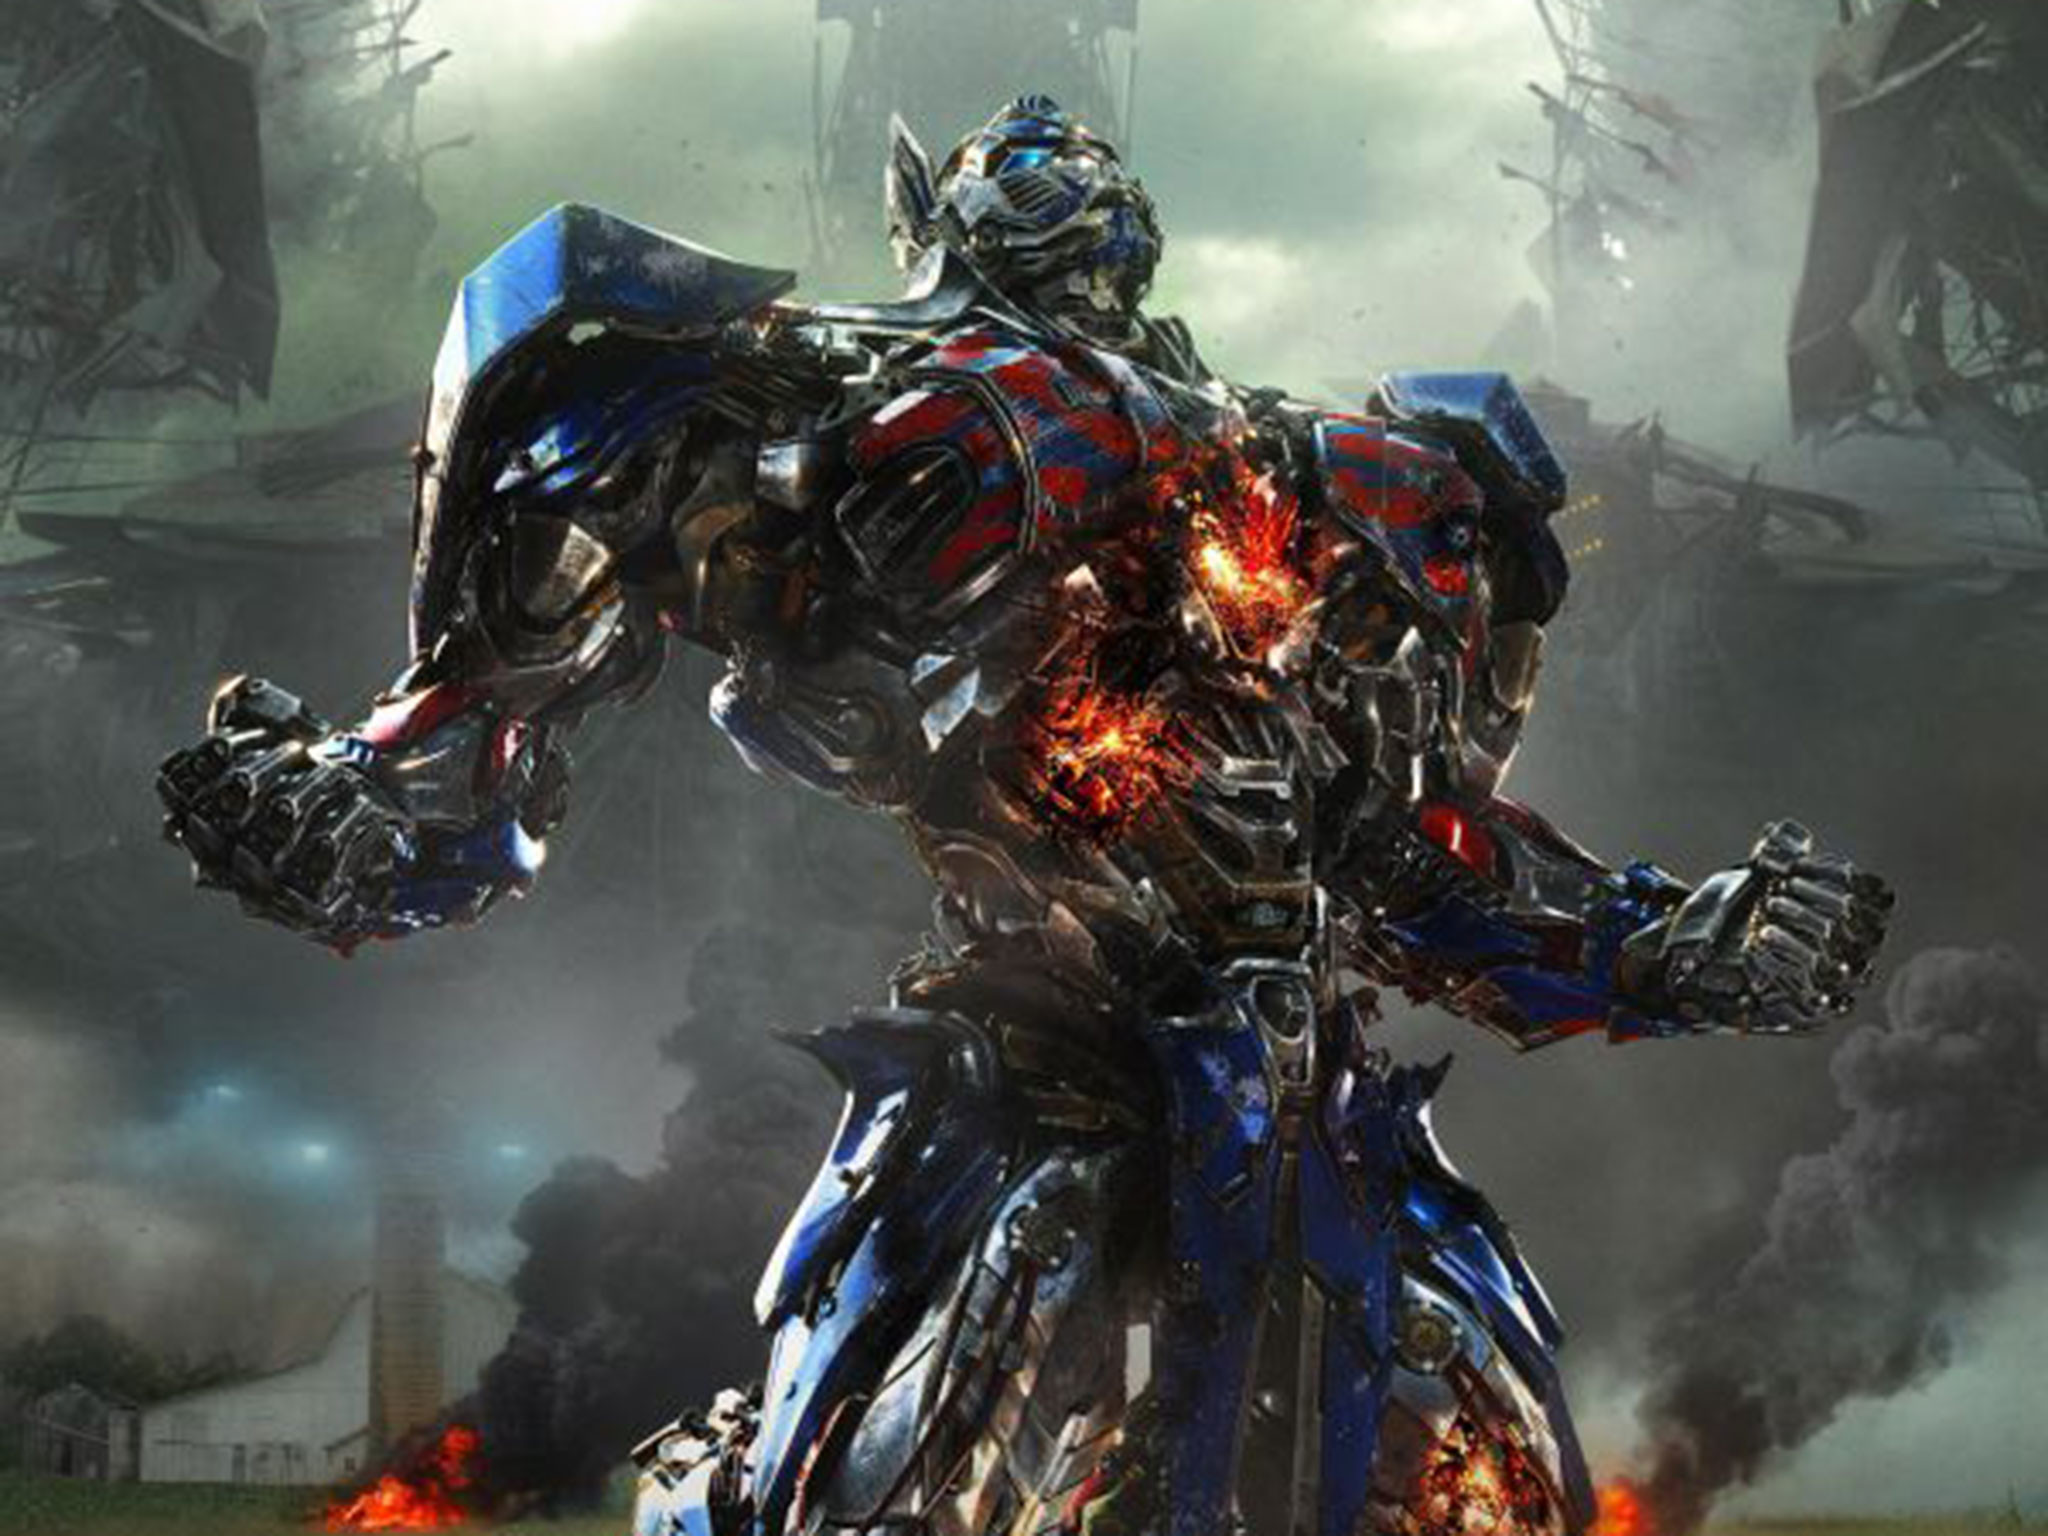 Transformers 5, 6, 7 and 8 in the works according to Hasbro Studios  President Stephen Davis | The Independent